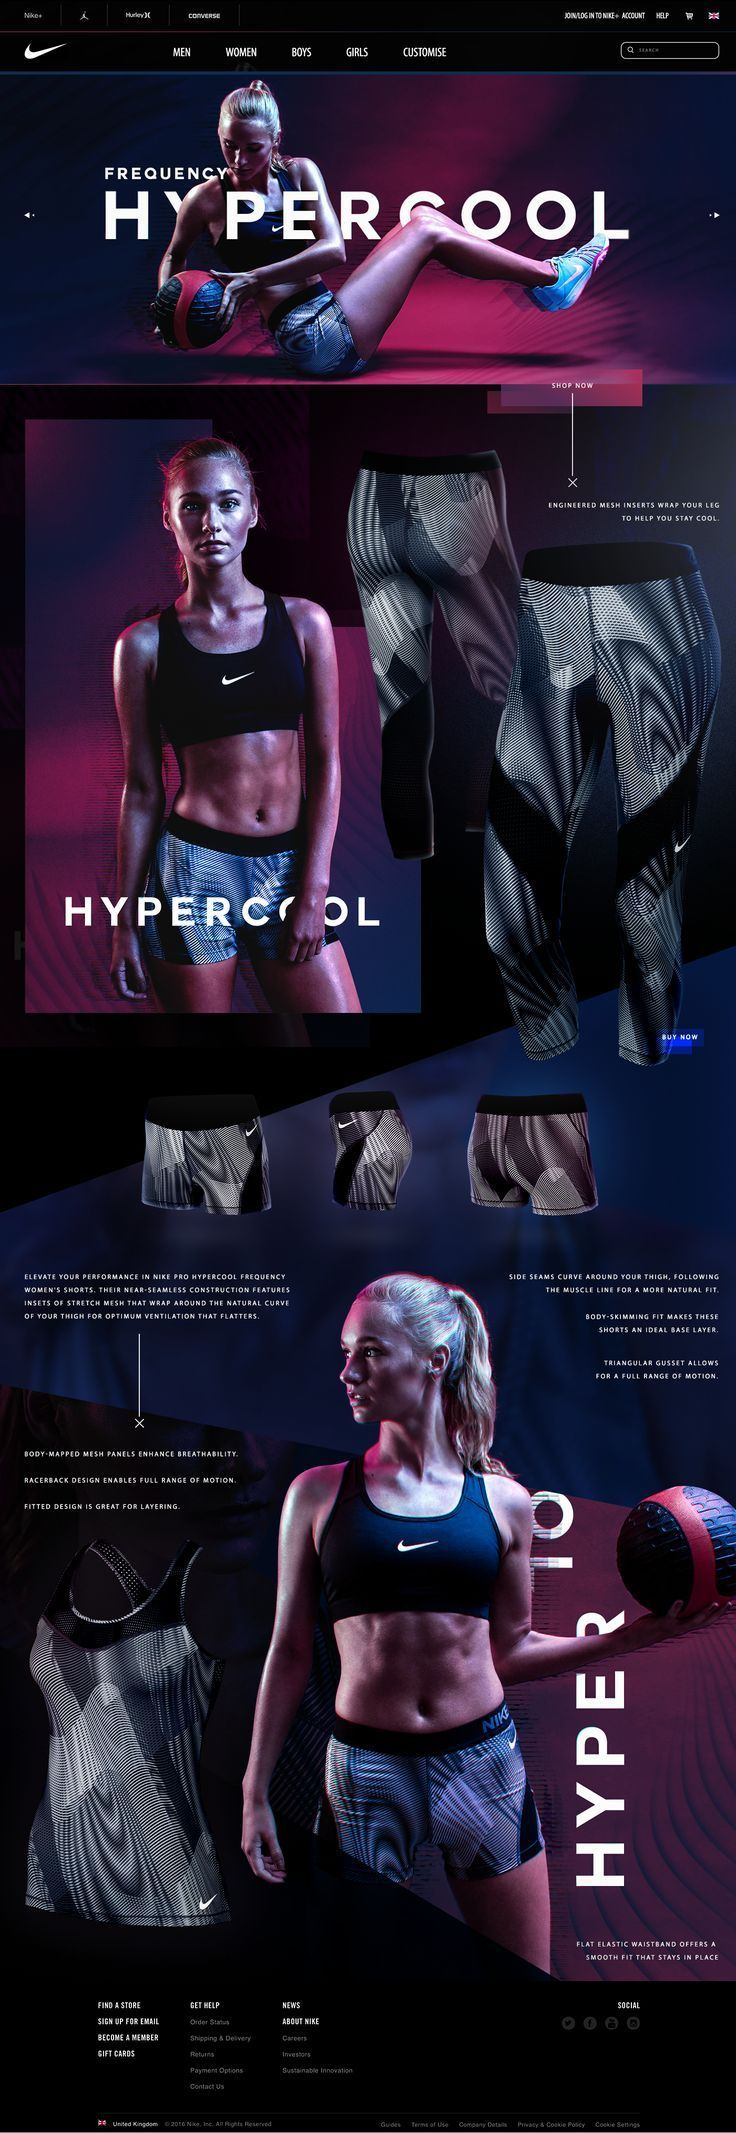 Nike 'HYPERCOOL Frequency' Campaign Summer 2016 on